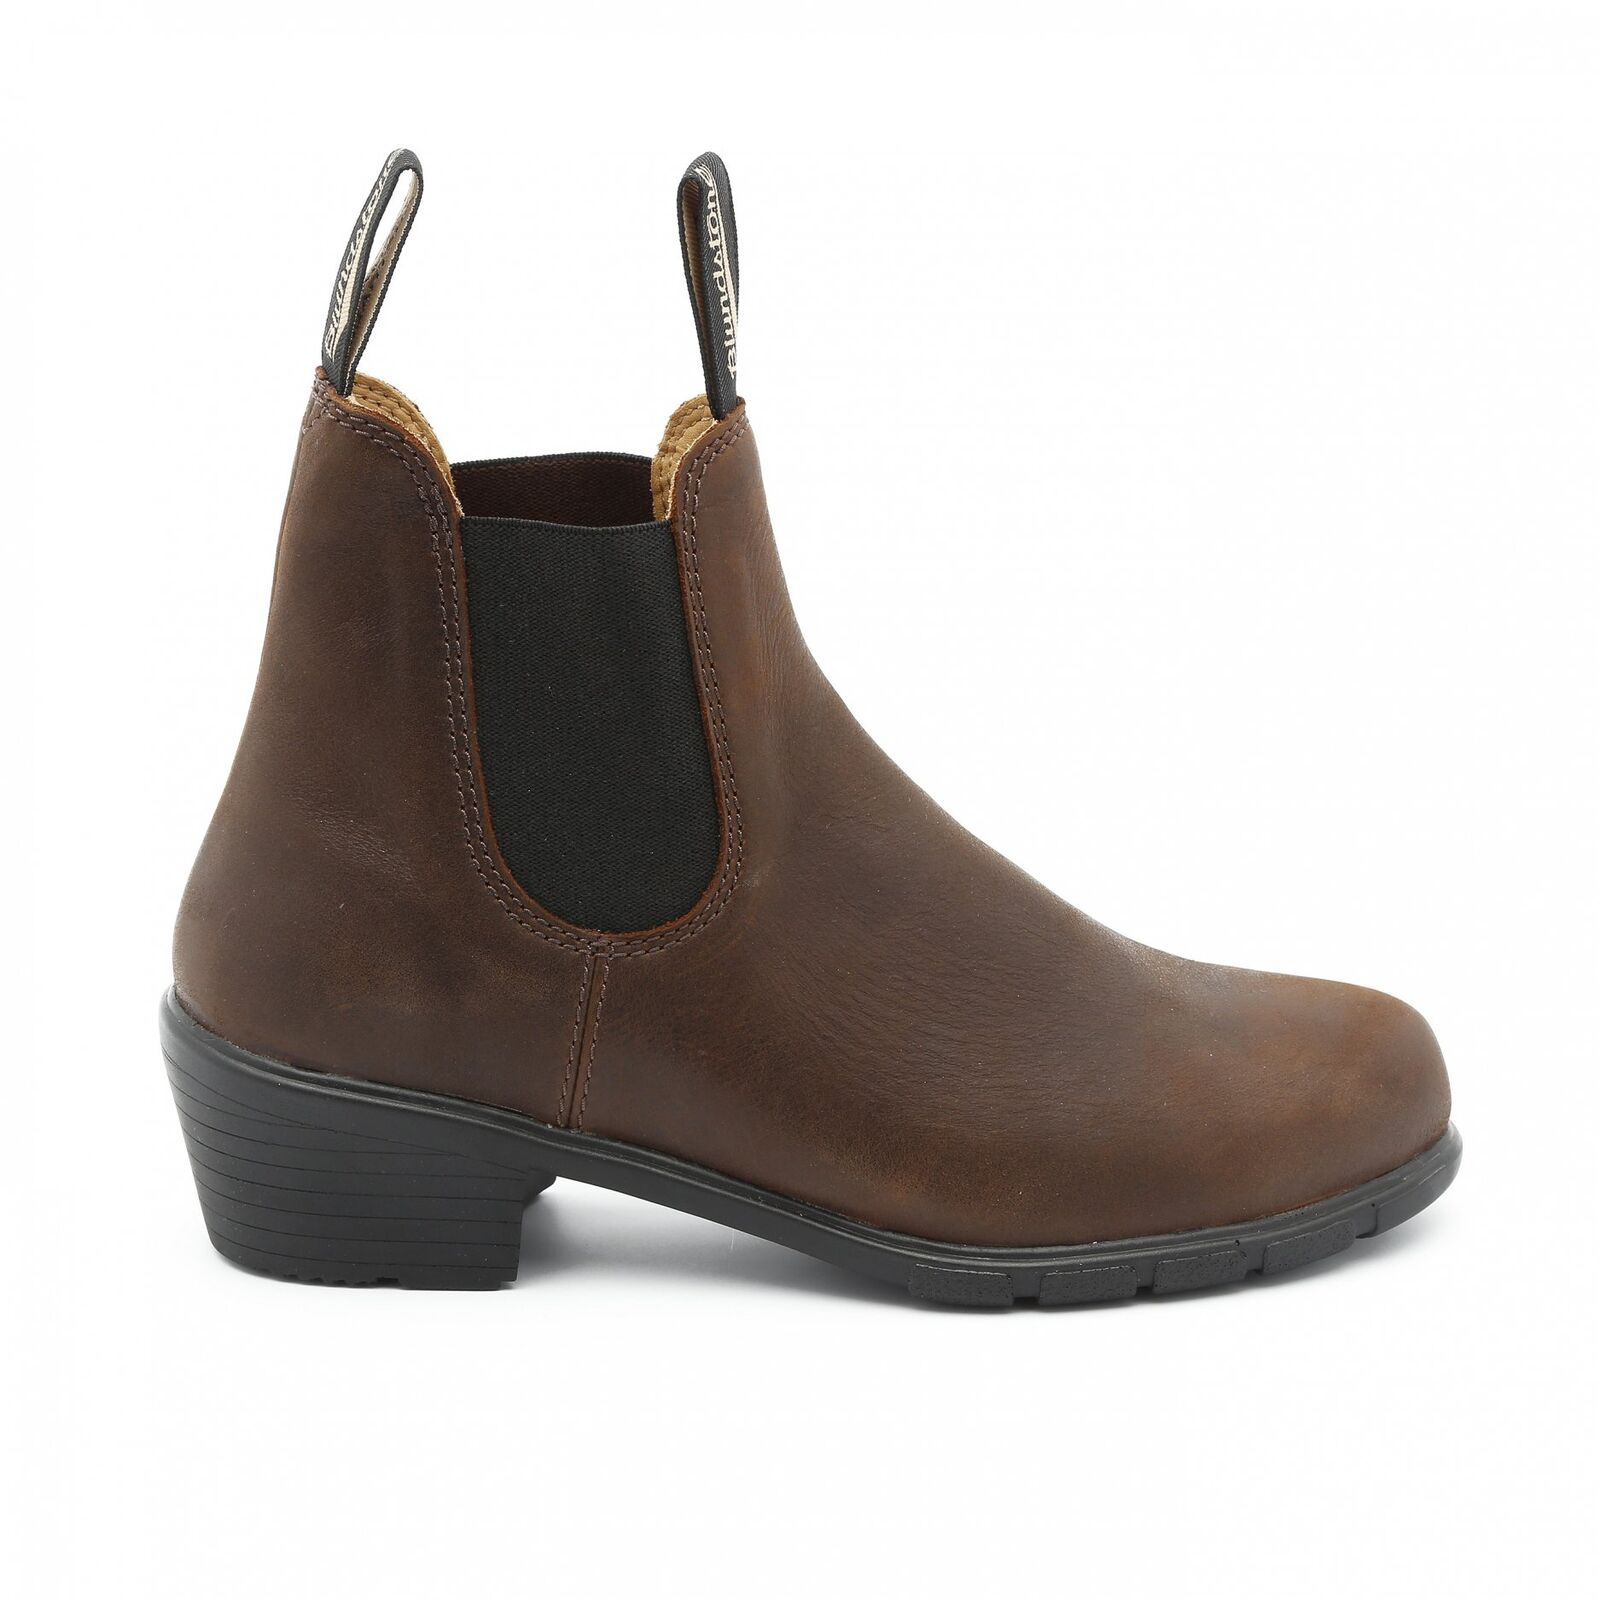 NEW Blundstone Style 1673 Brown Heeled Boot Leather For Women